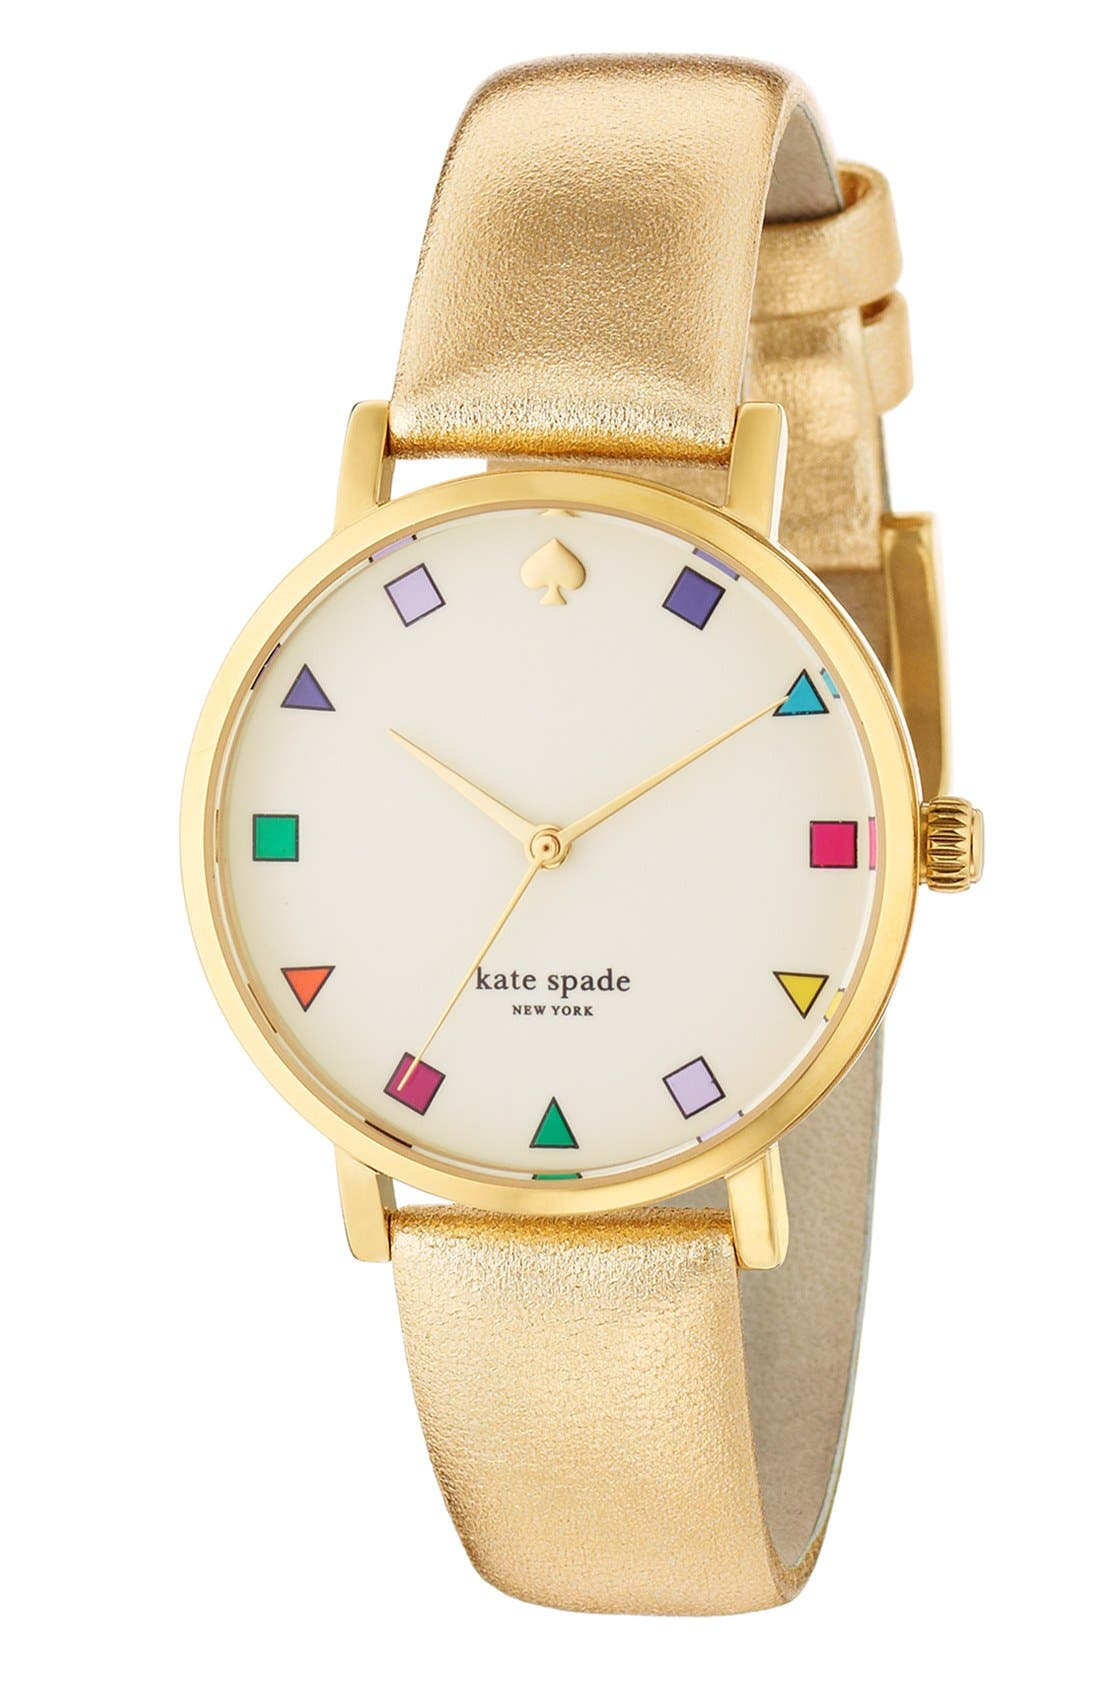 KATE SPADE NEW YORK, 'metro patchwork' leather strap watch, 34mm, Alternate thumbnail 2, color, 710